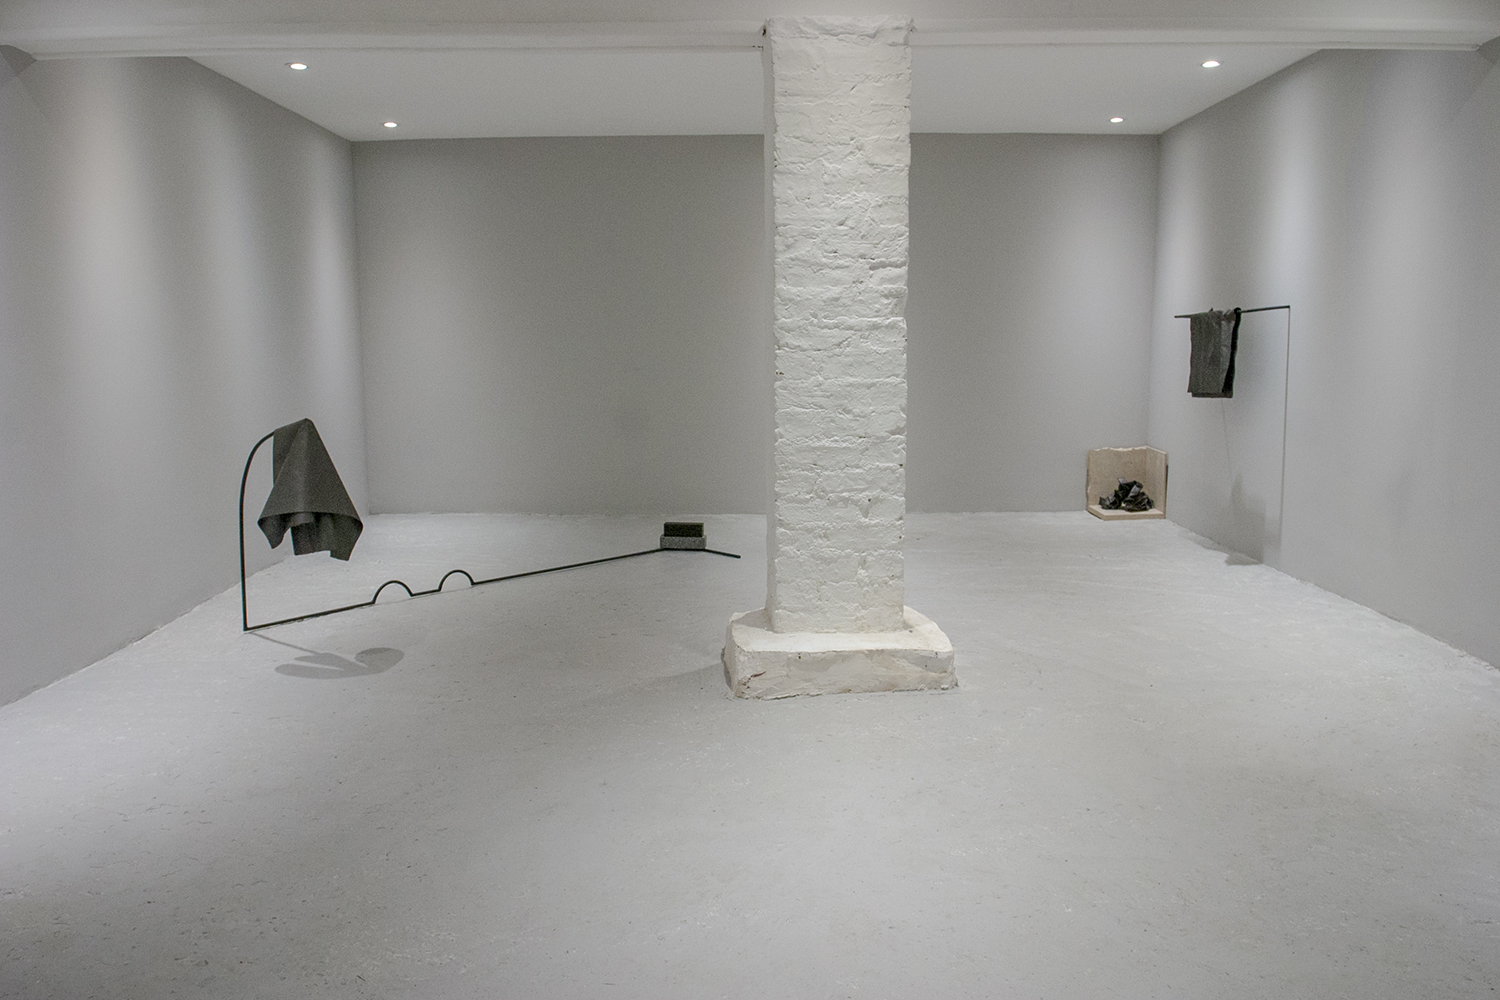 Alan Magee: Some days I'm thinking, Some days I'm dreaming Wide (Old New Cross space)